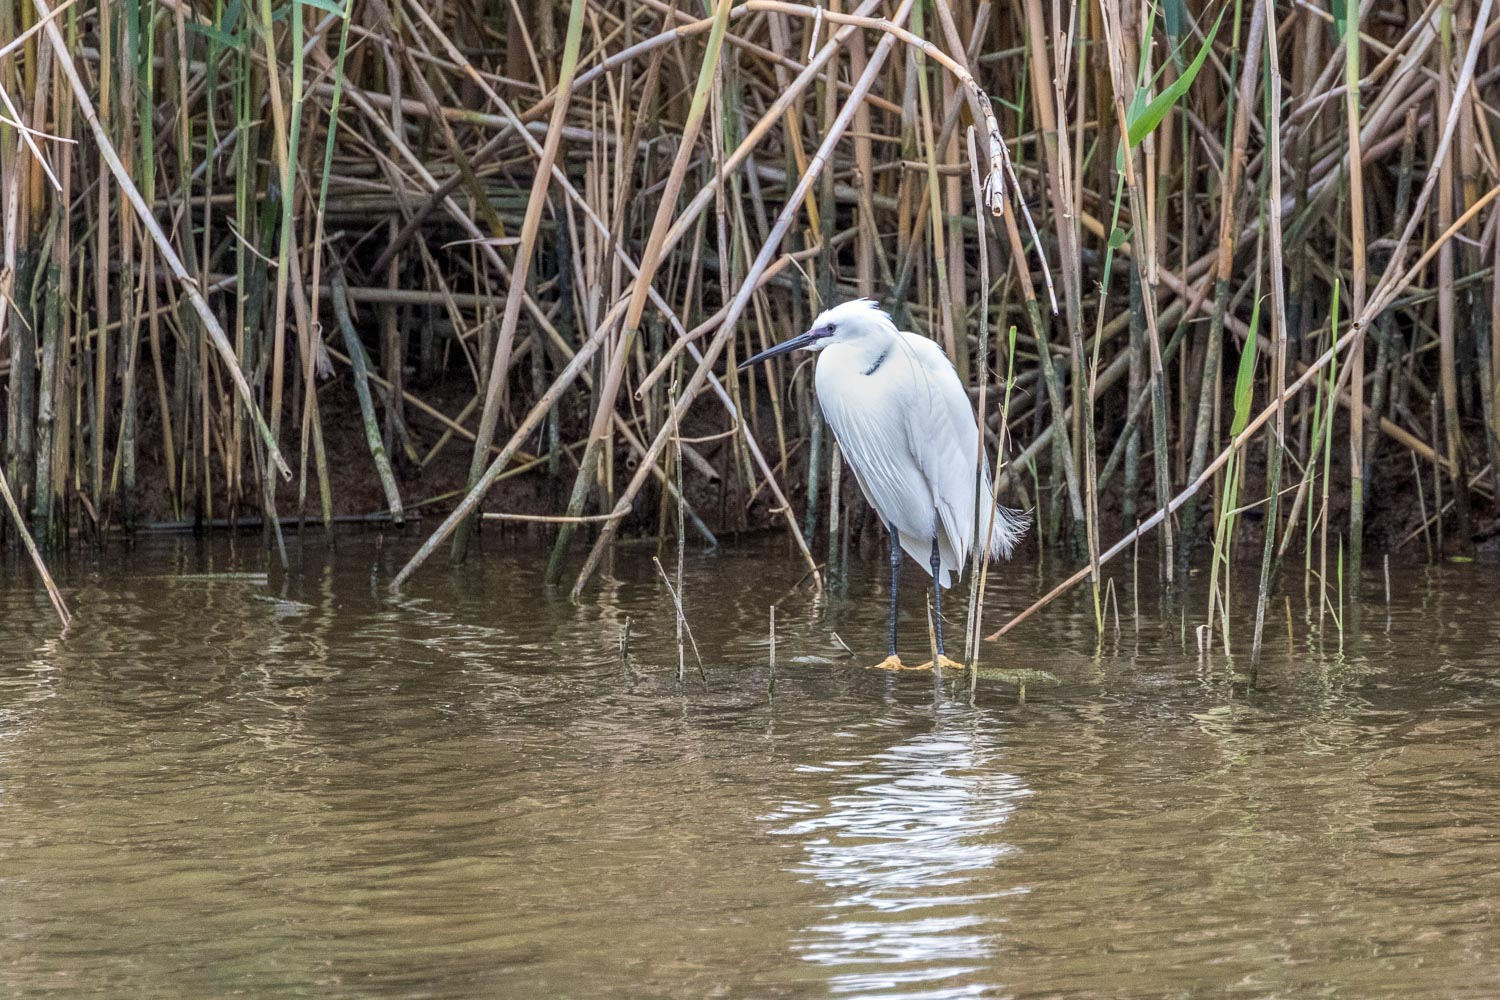 Little Egret S'albufera